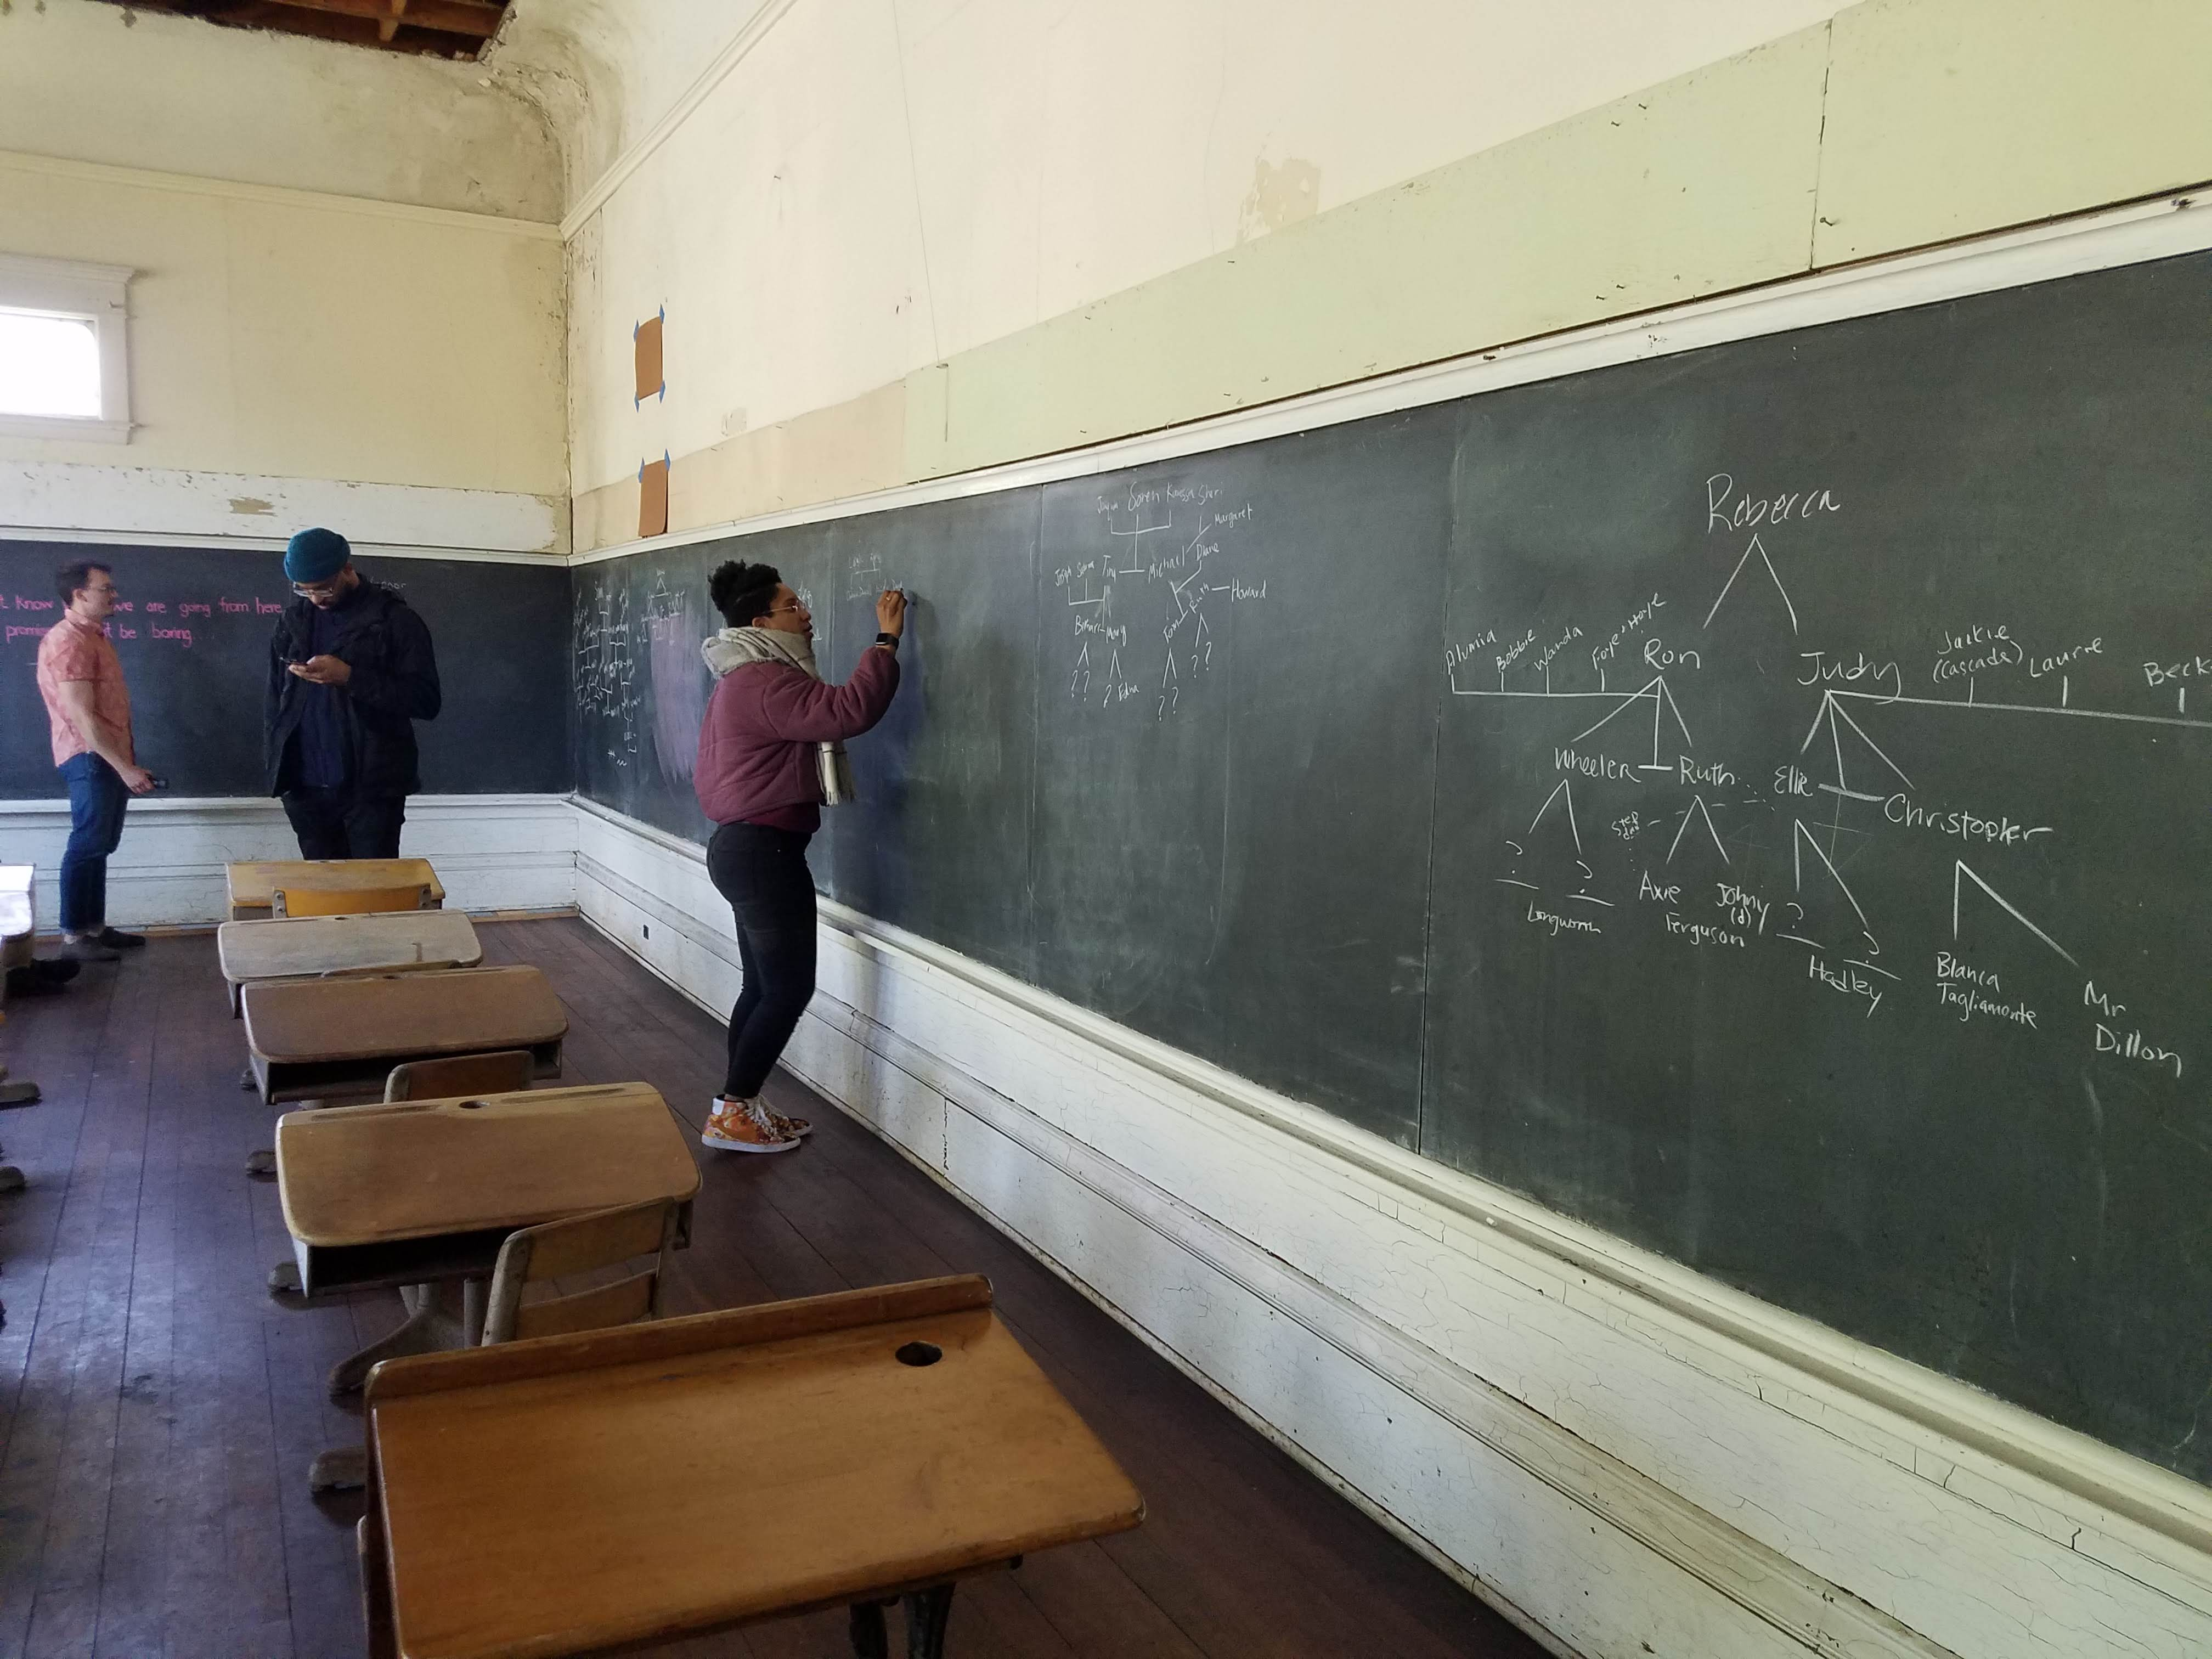 An actor stands near a row of old-fashioned school desks, writing on a long chalkboard